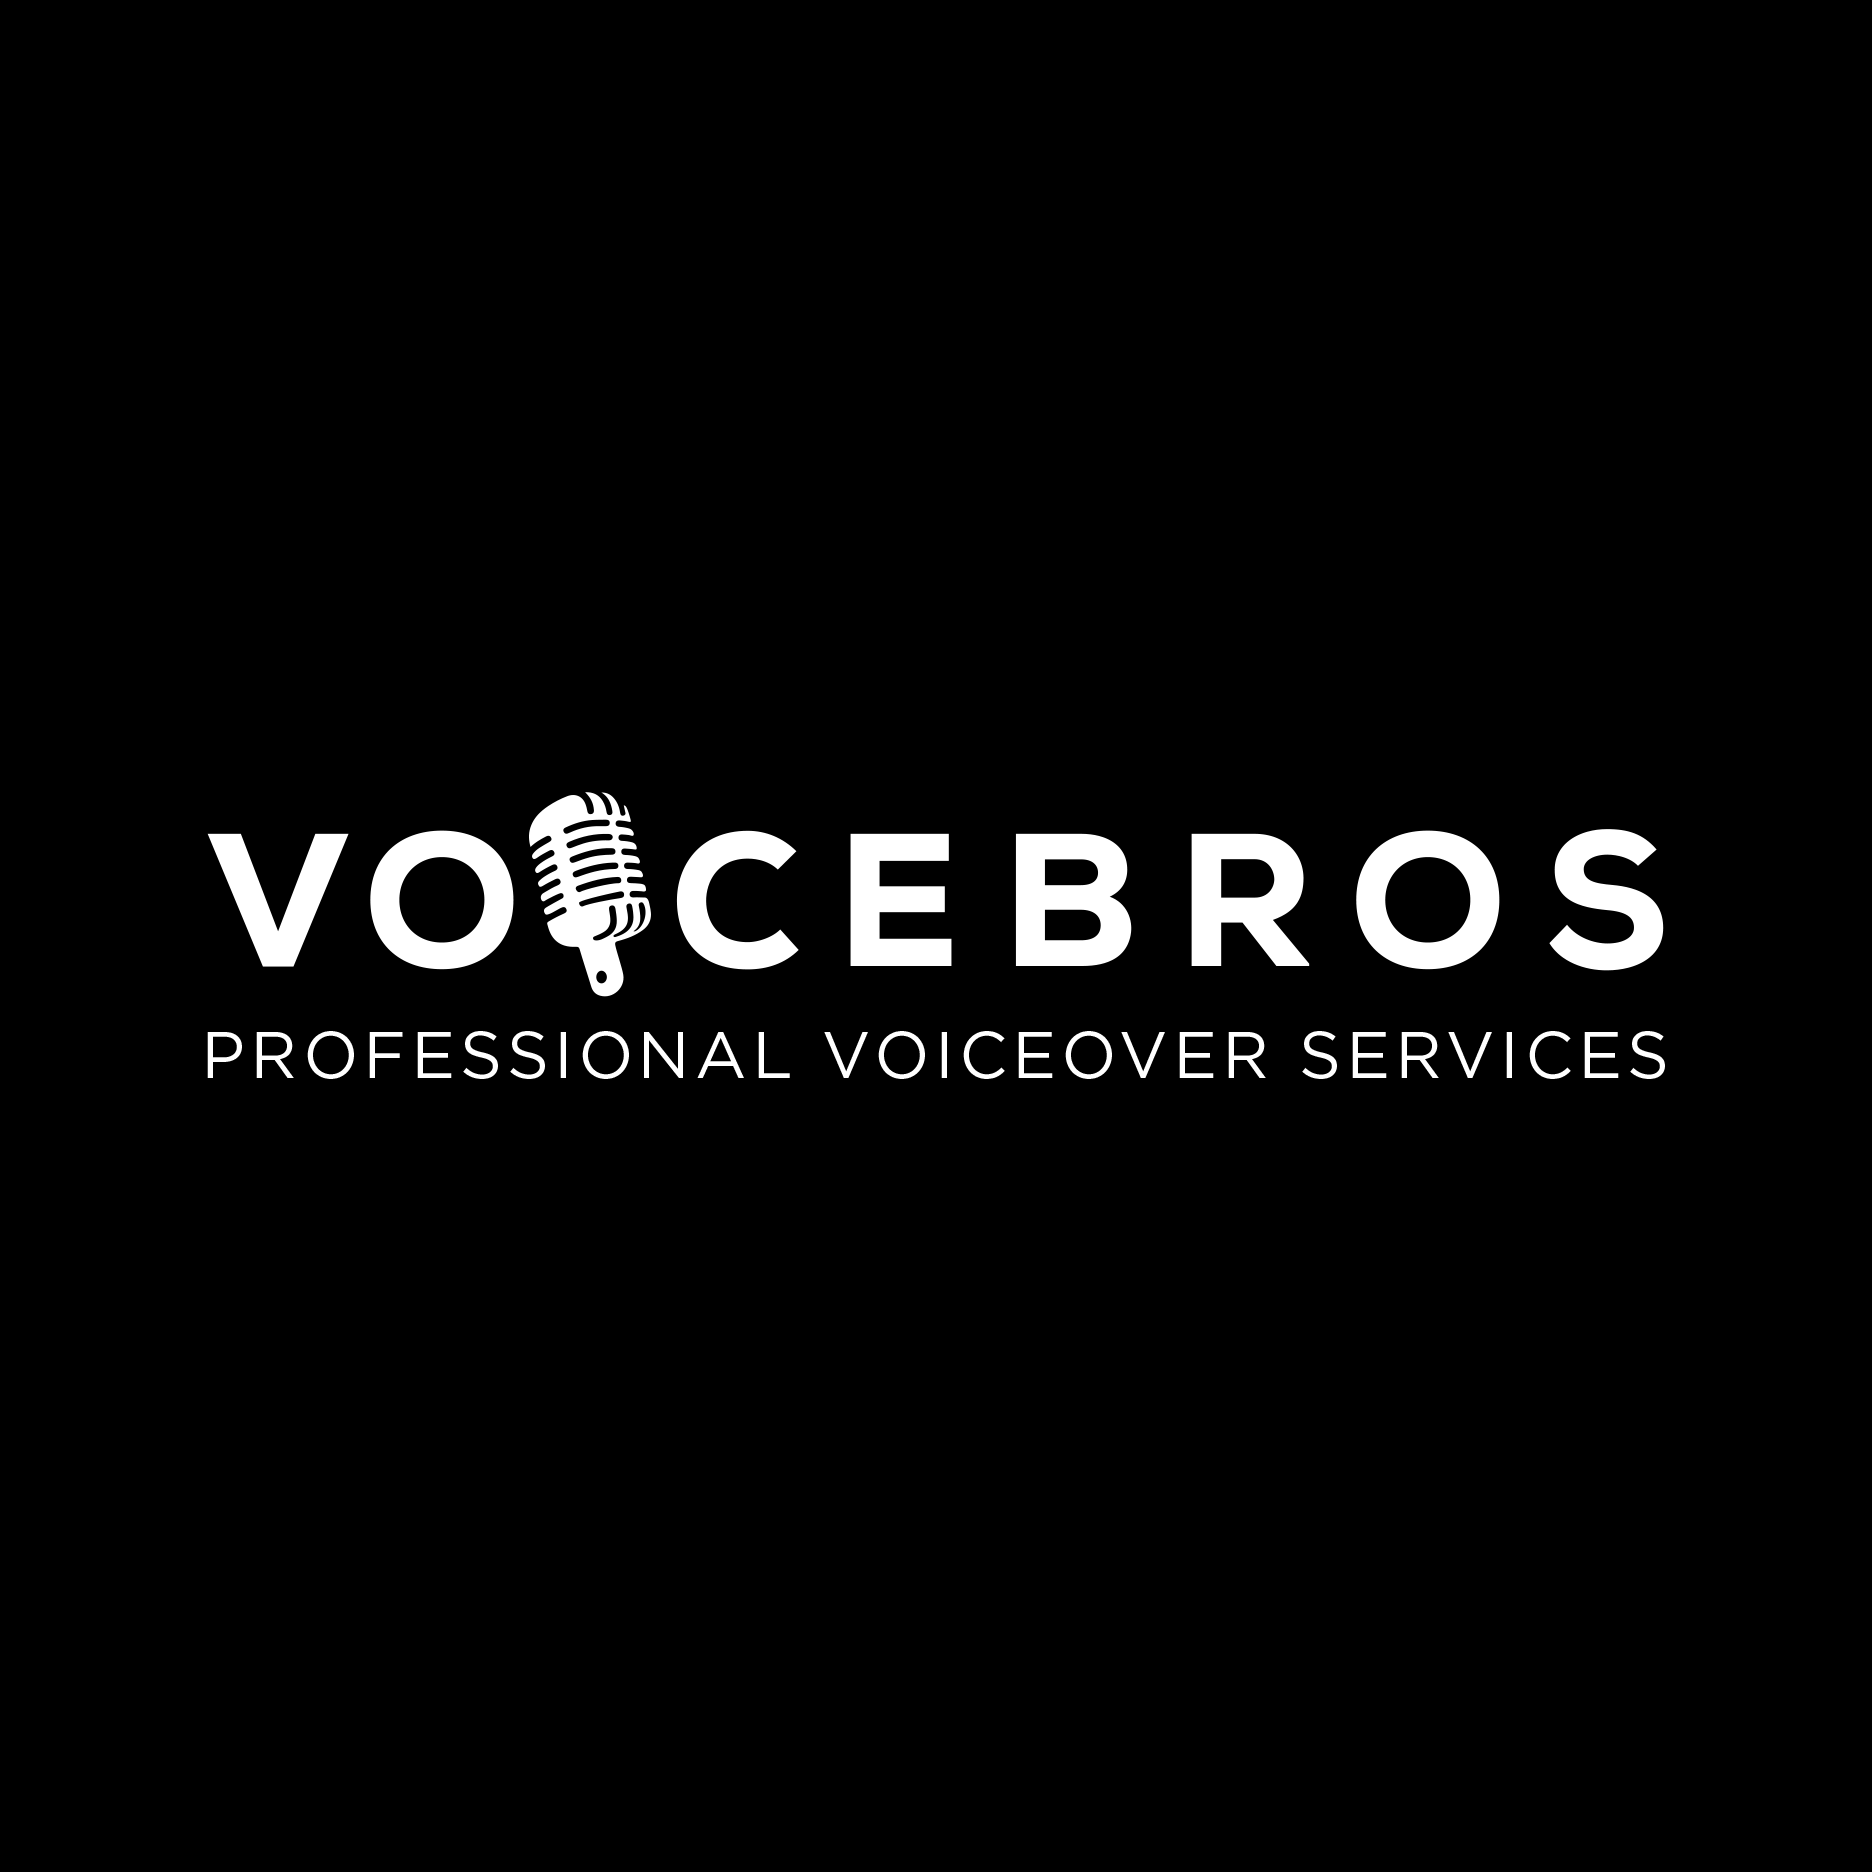 Kyle Burrow is a voice over actor